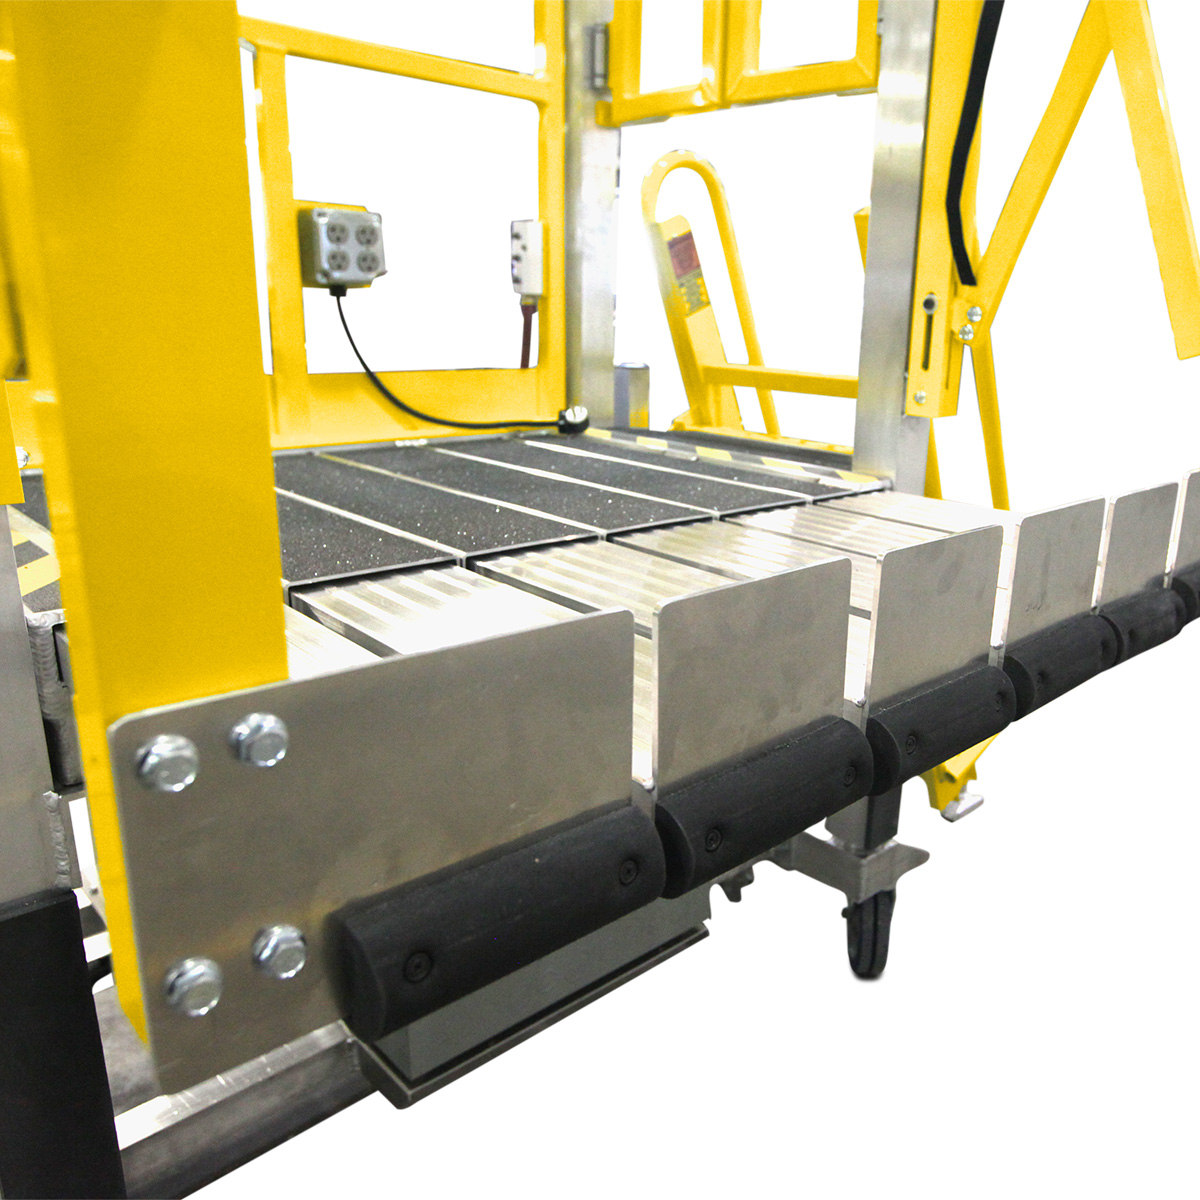 AgustaWestland AW139 – Daily Maintenance OSHA compliant toeboards for portable aluminum work platforms and deck extensions for cantilever overreach access.